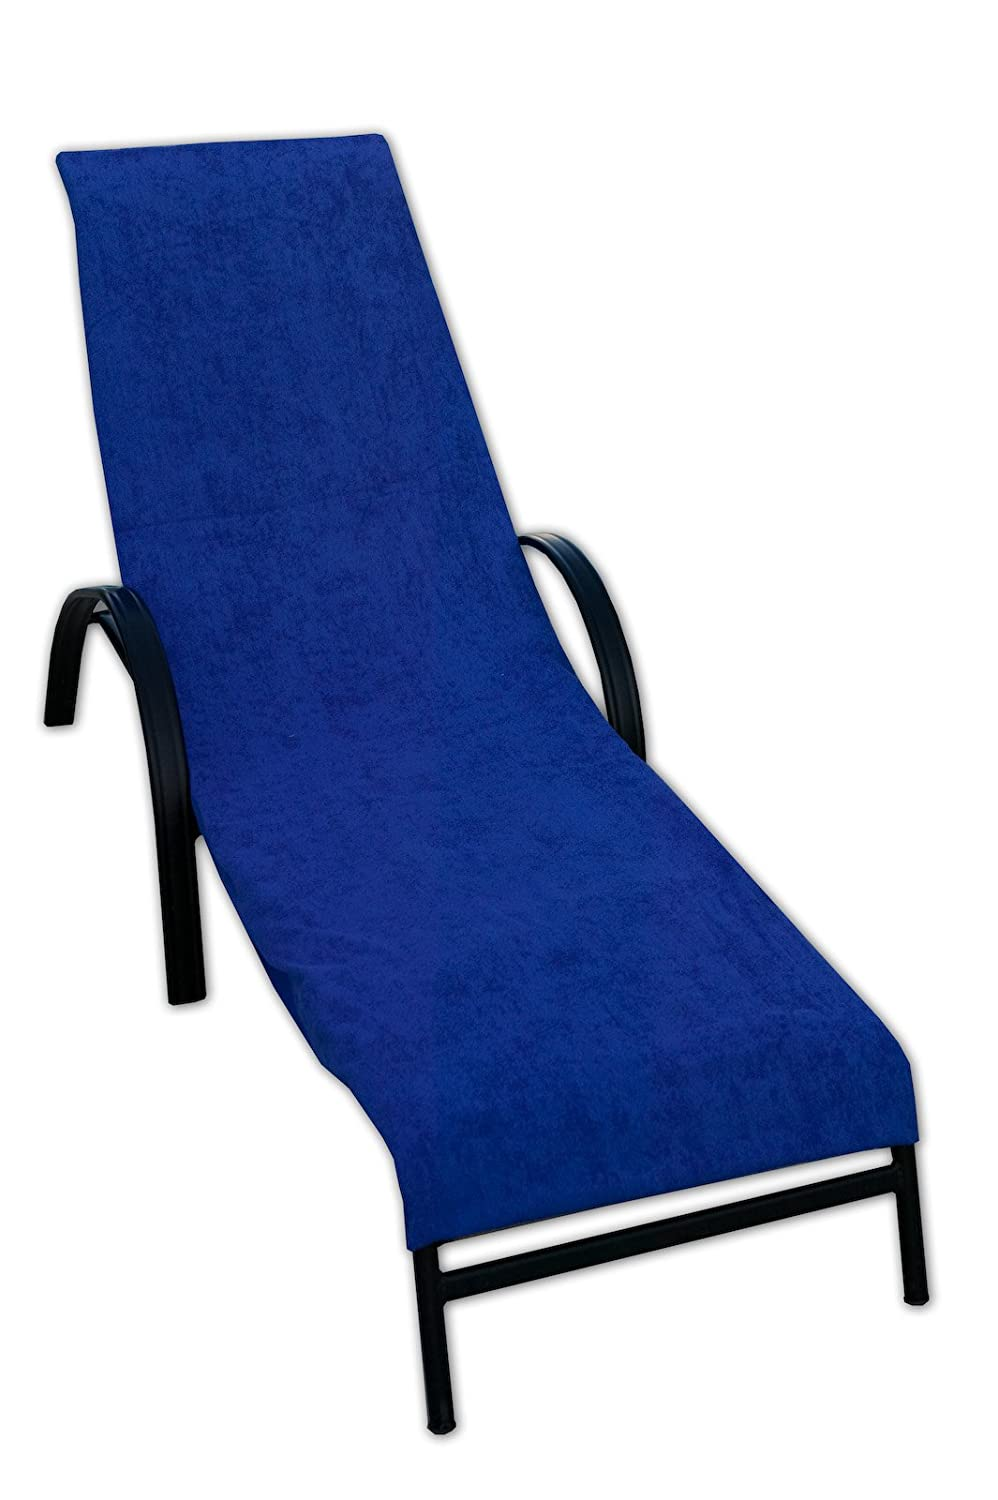 Terry Lounge Chair Cover Royal Blue New Free Shipping